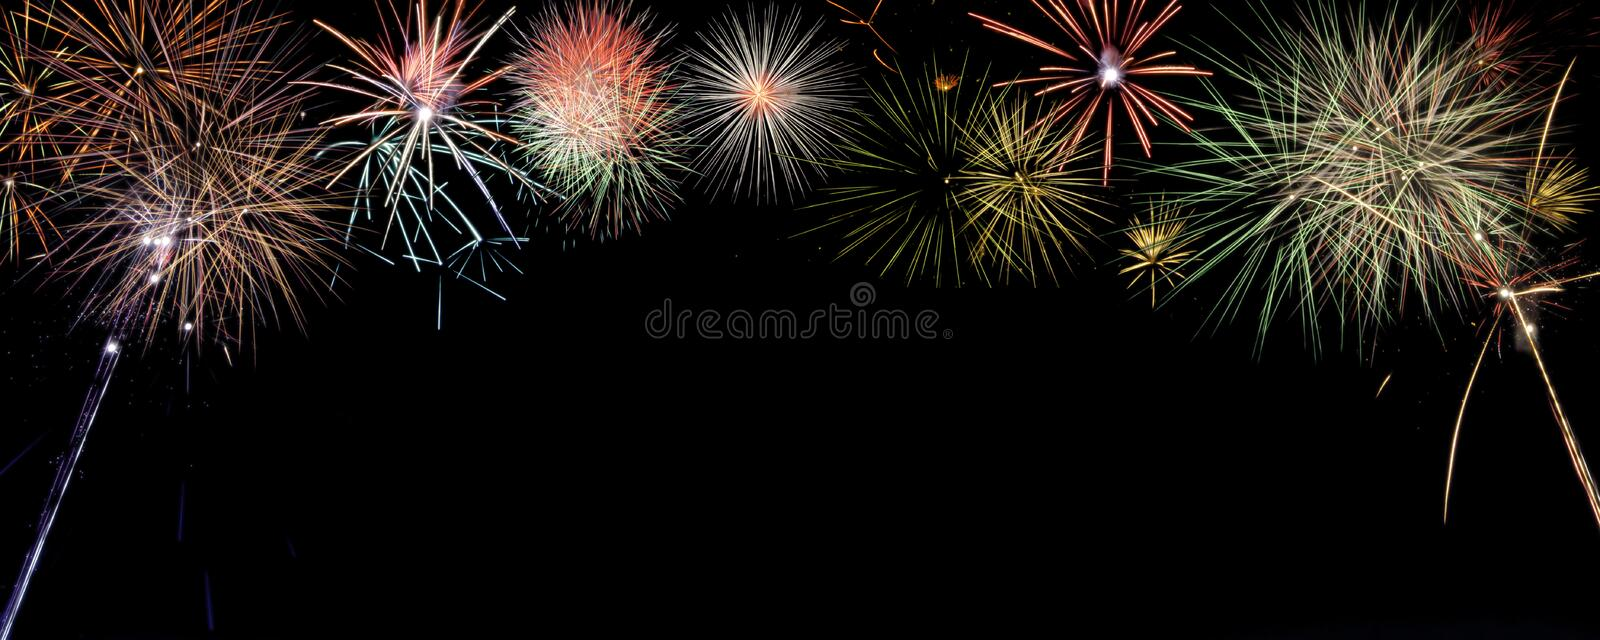 Colorful fireworks banner with room for writing. Colorful bursting fireworks across the top of a large banner. Lots of room for words, perfect for holidays and stock photo